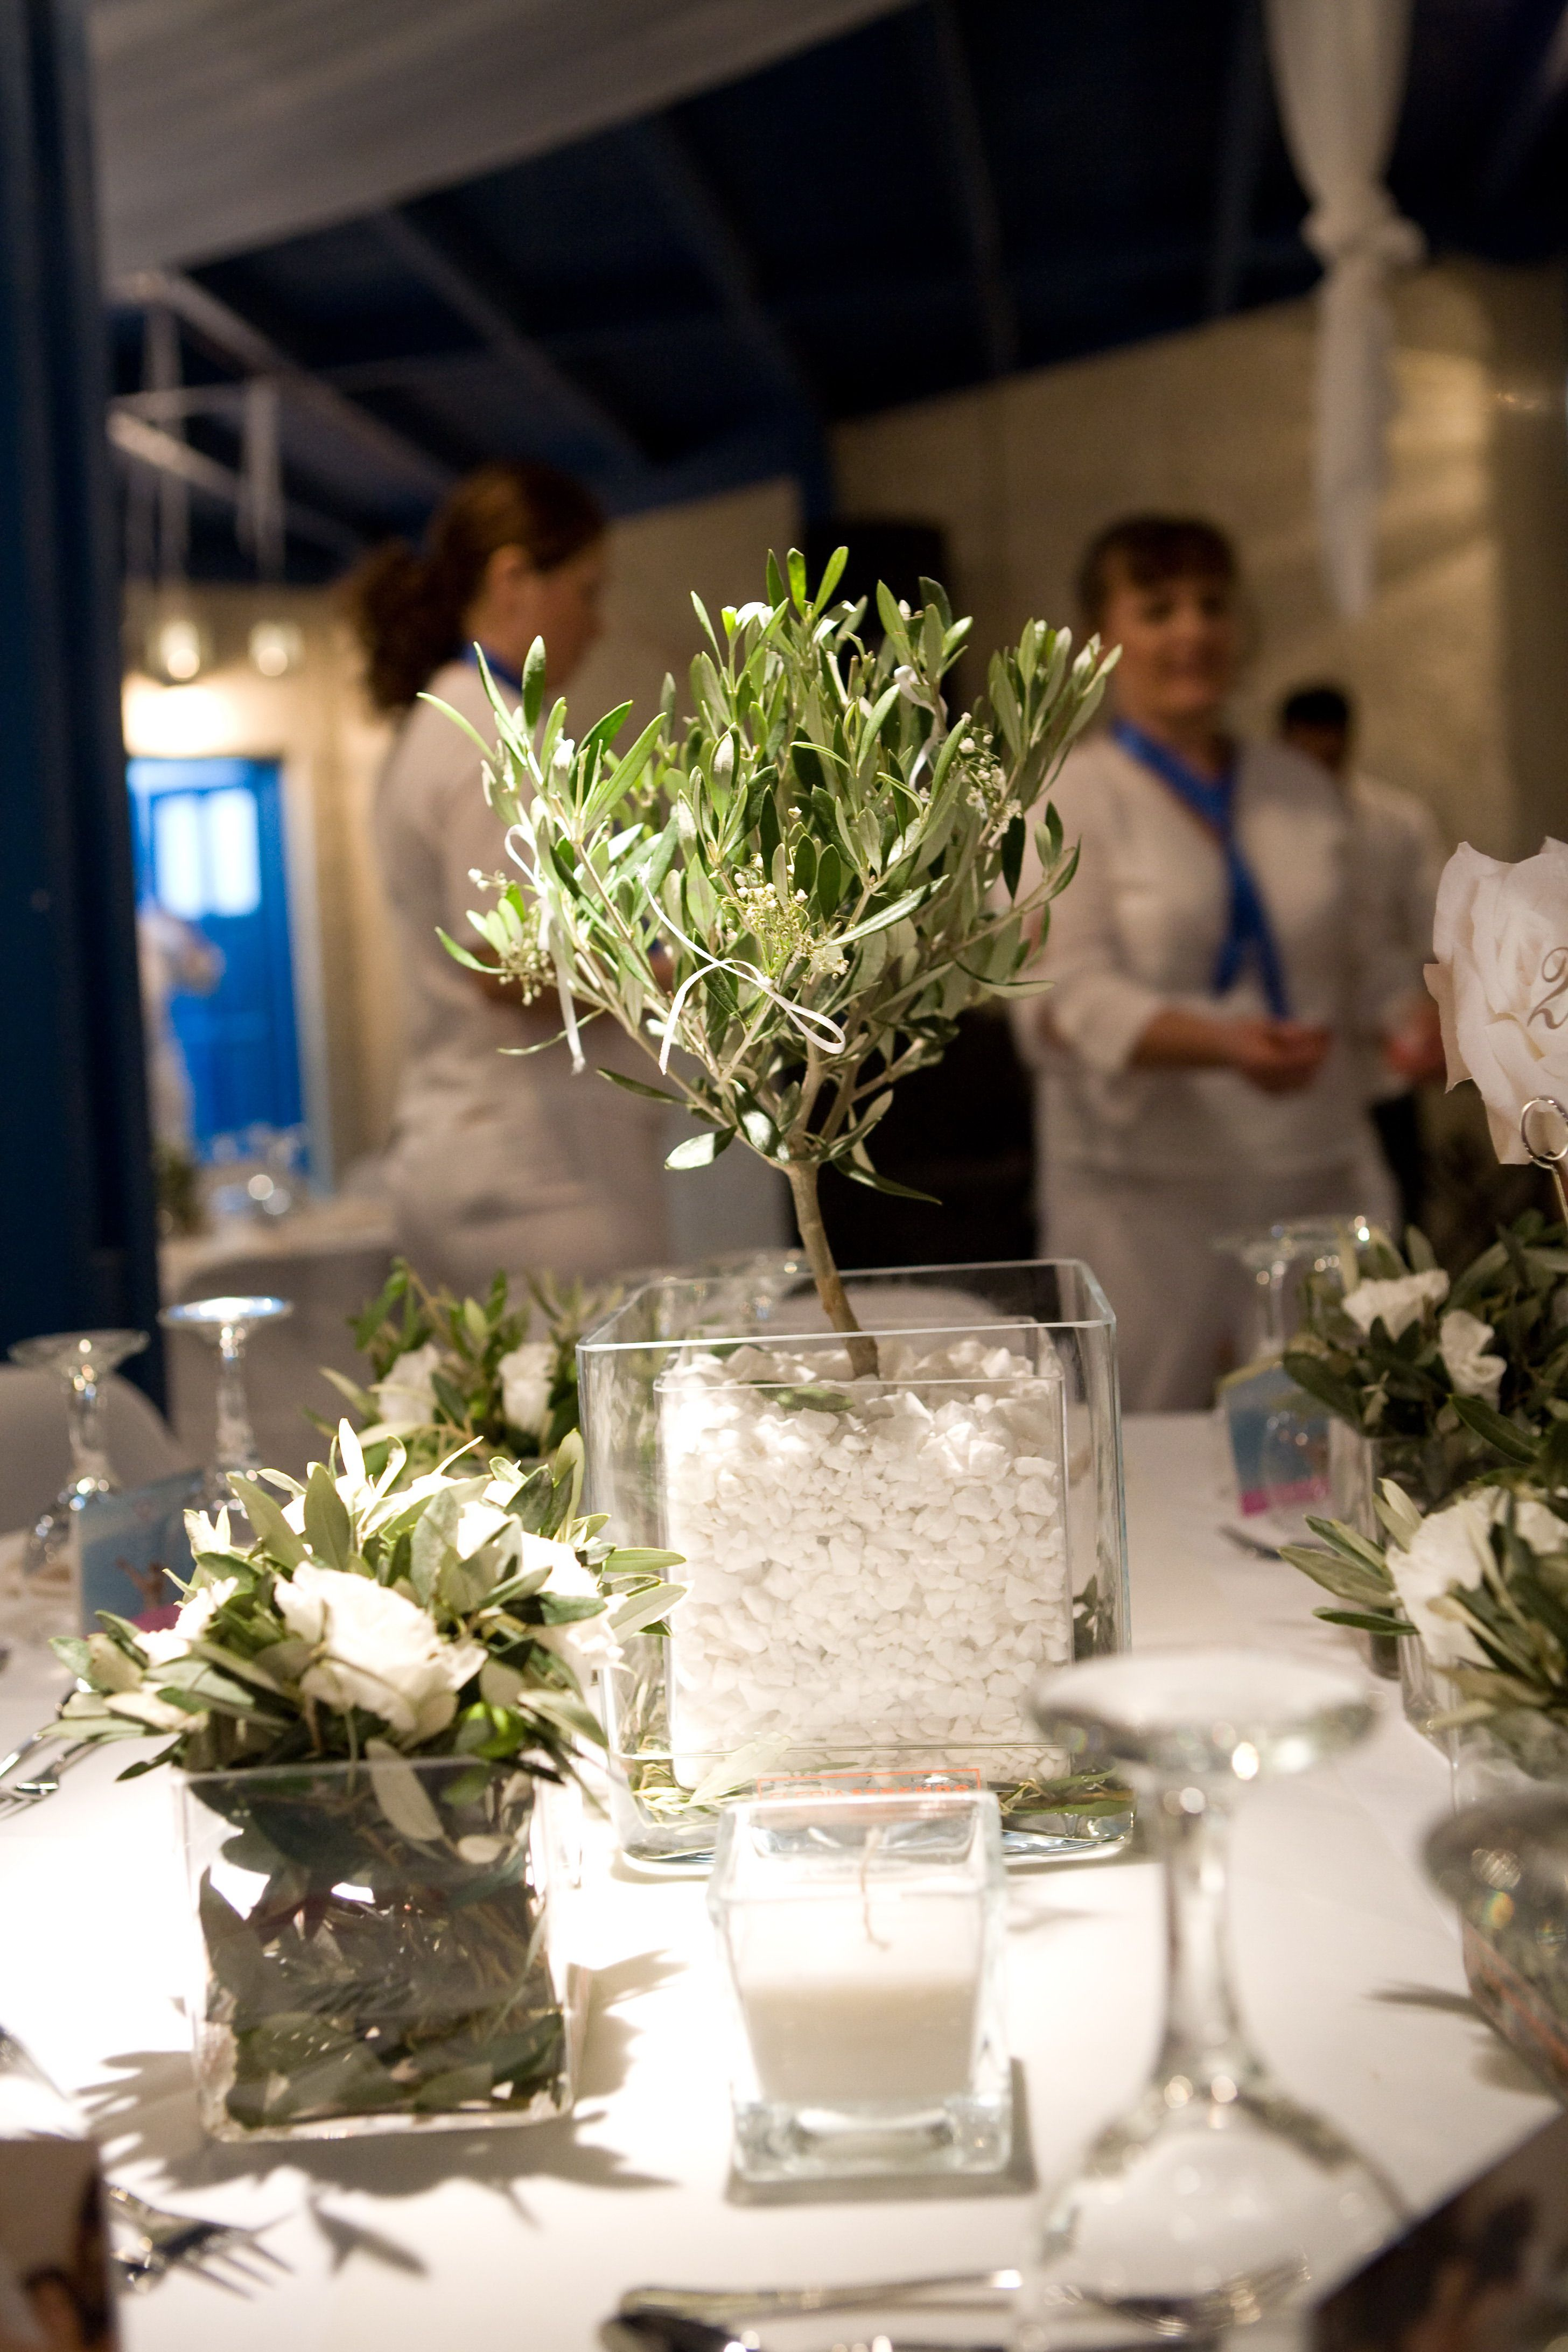 centre piece of glass cubes filled with small olive trees